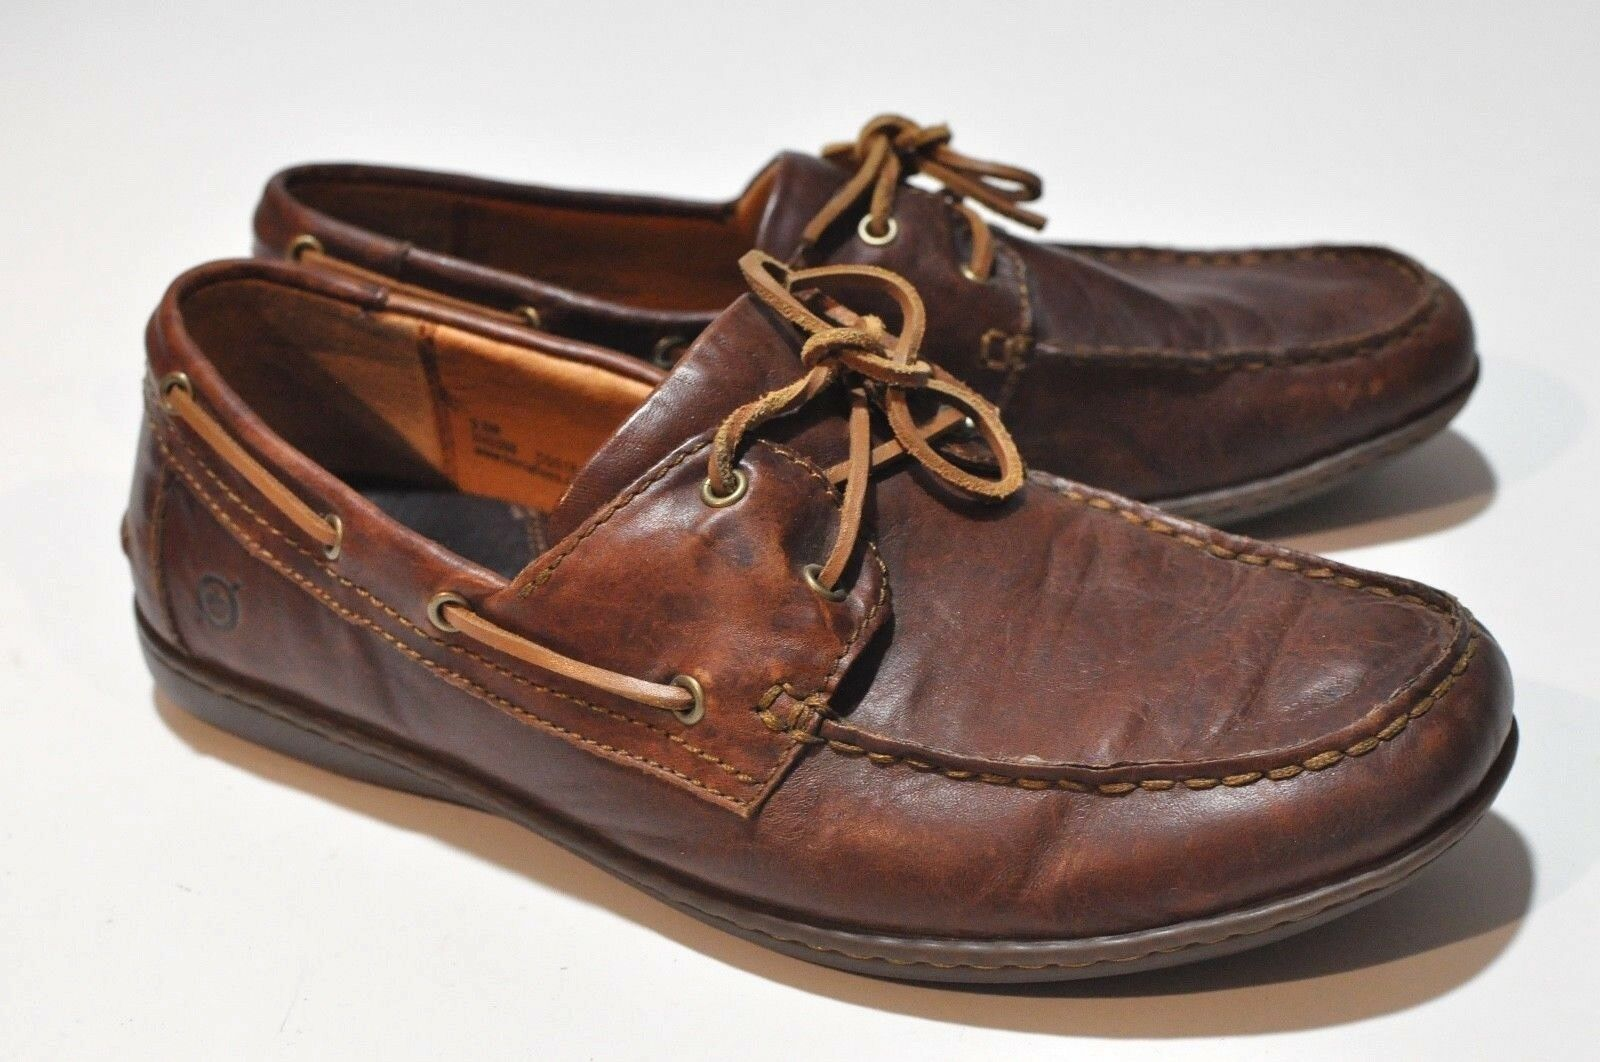 Born Mens leather boat shoes size 9.5